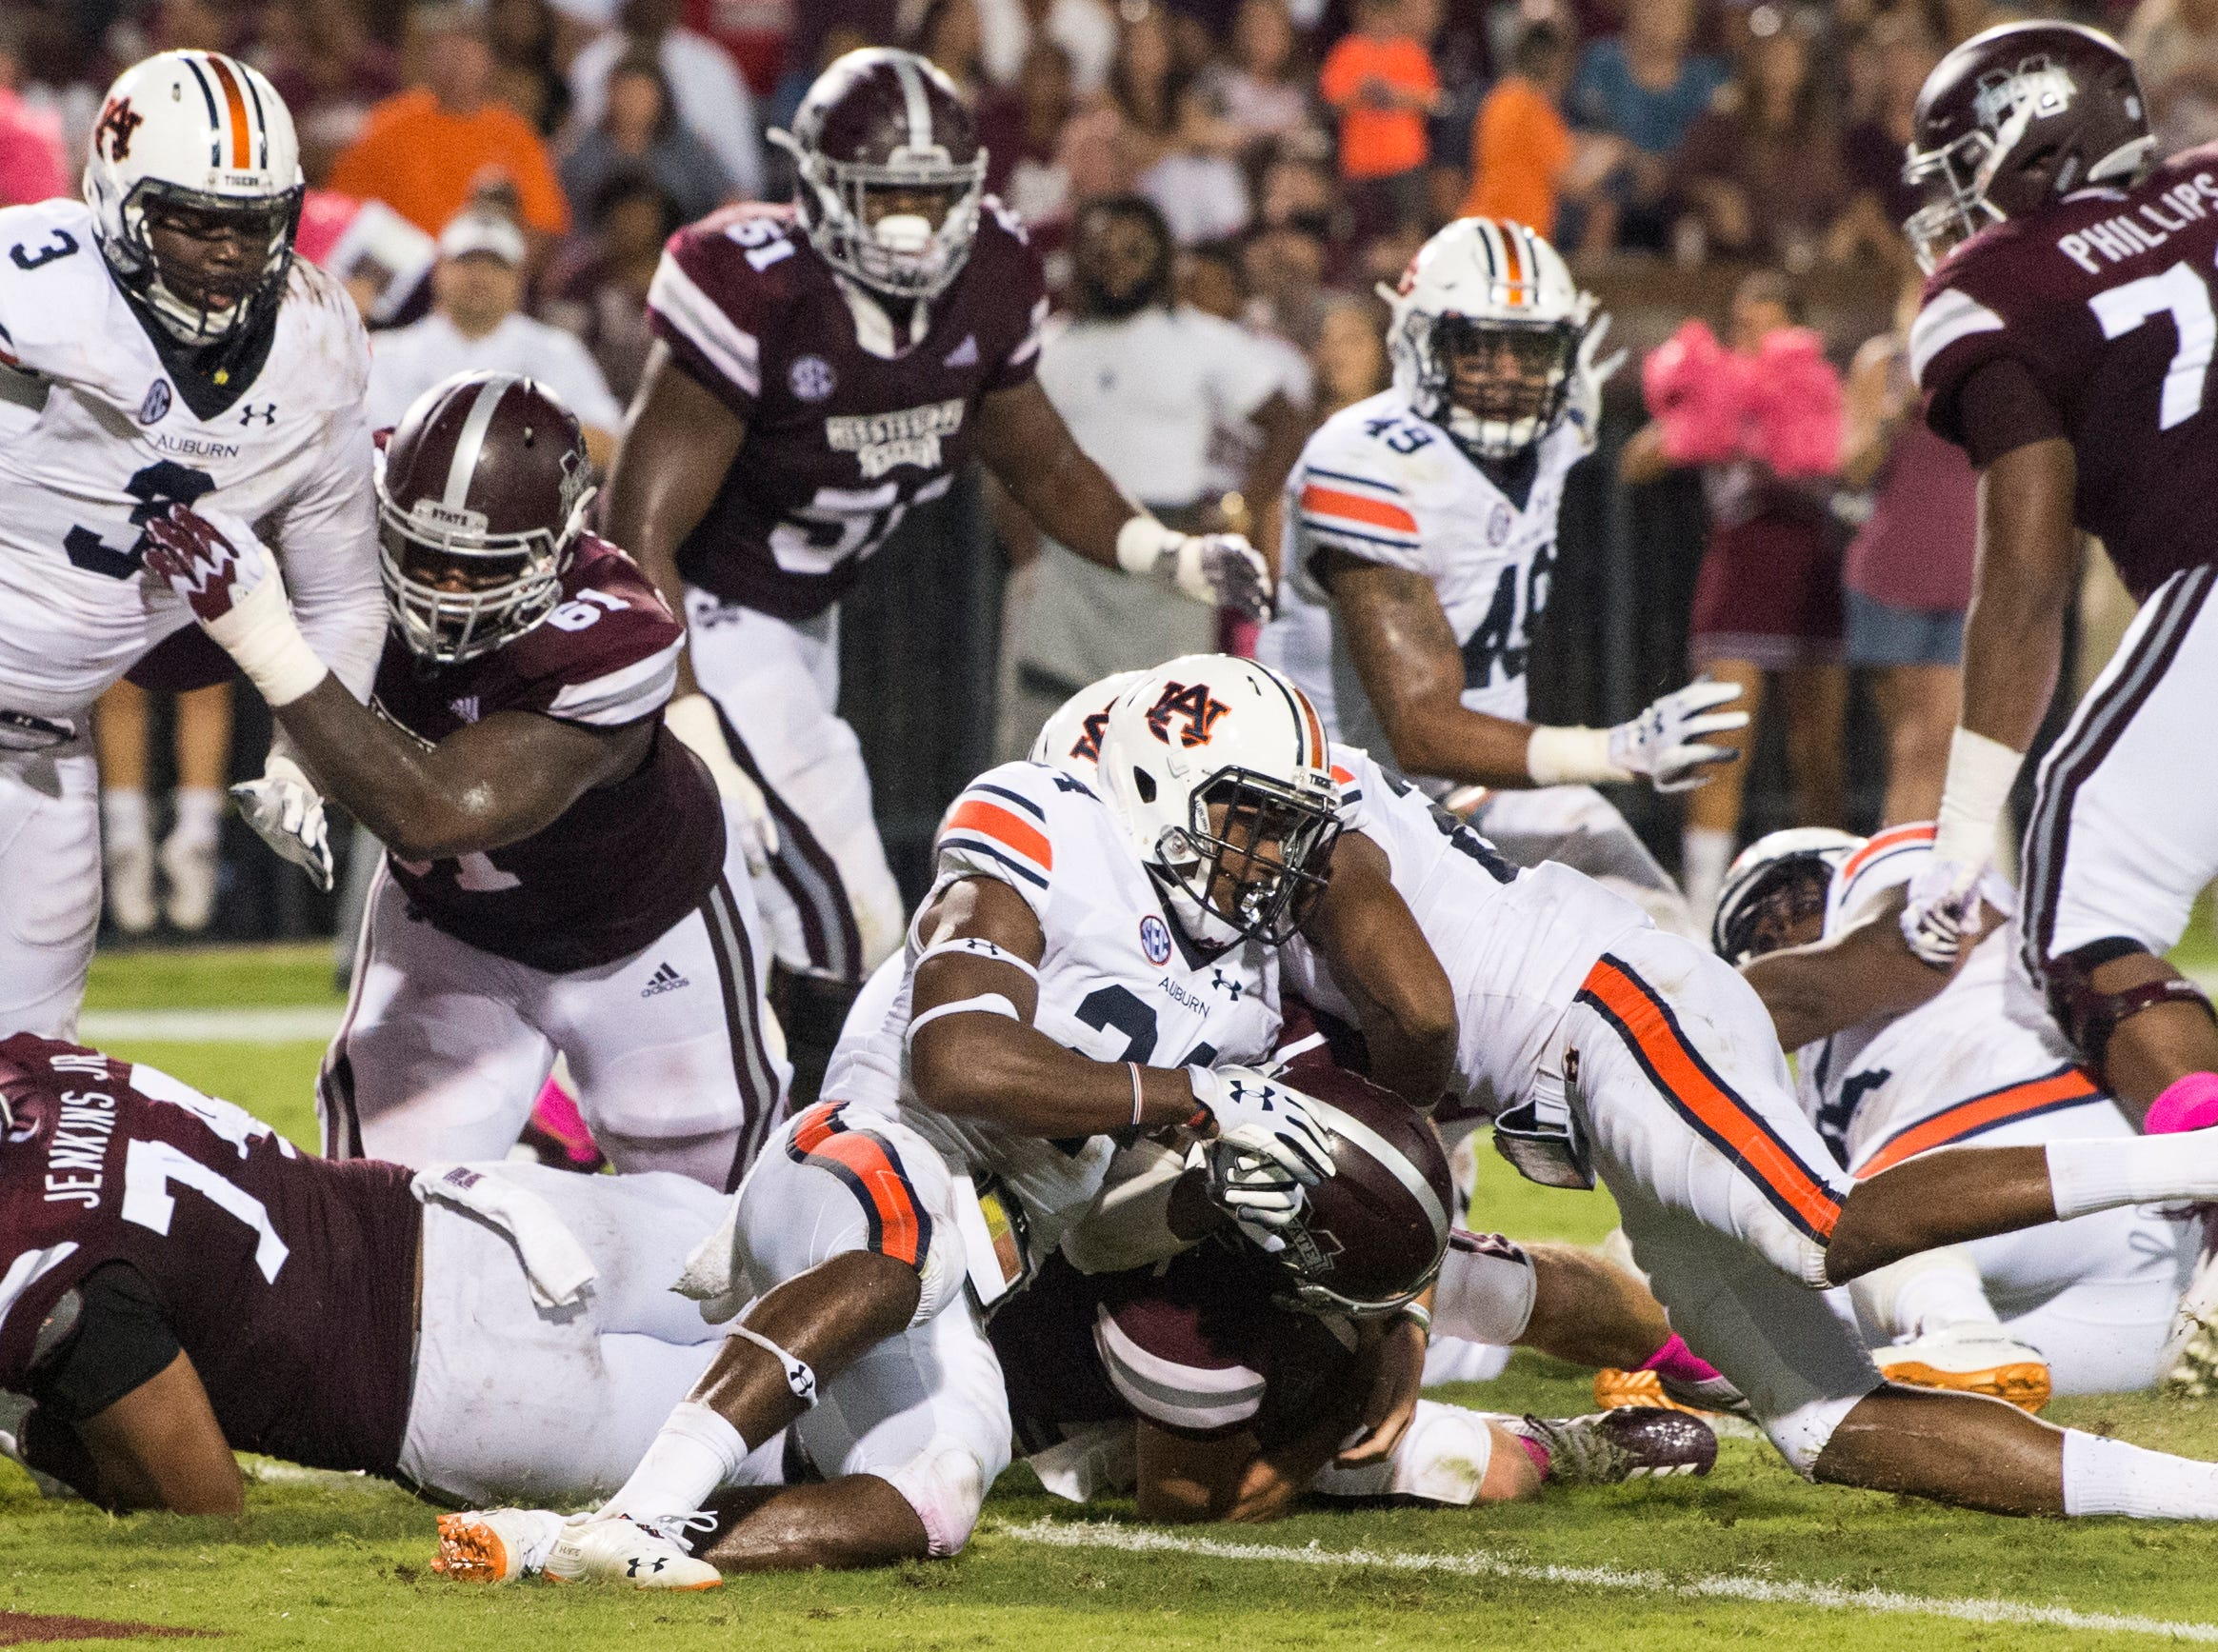 Mississippi State's Nick Fitzgerald (7) pushes the ball into the end zone at the end of the first half at Davis Wade Stadium in Starkville, Miss., on Saturday, Oct. 6, 2018. Mississippi State leads Auburn 13-3 at halftime.